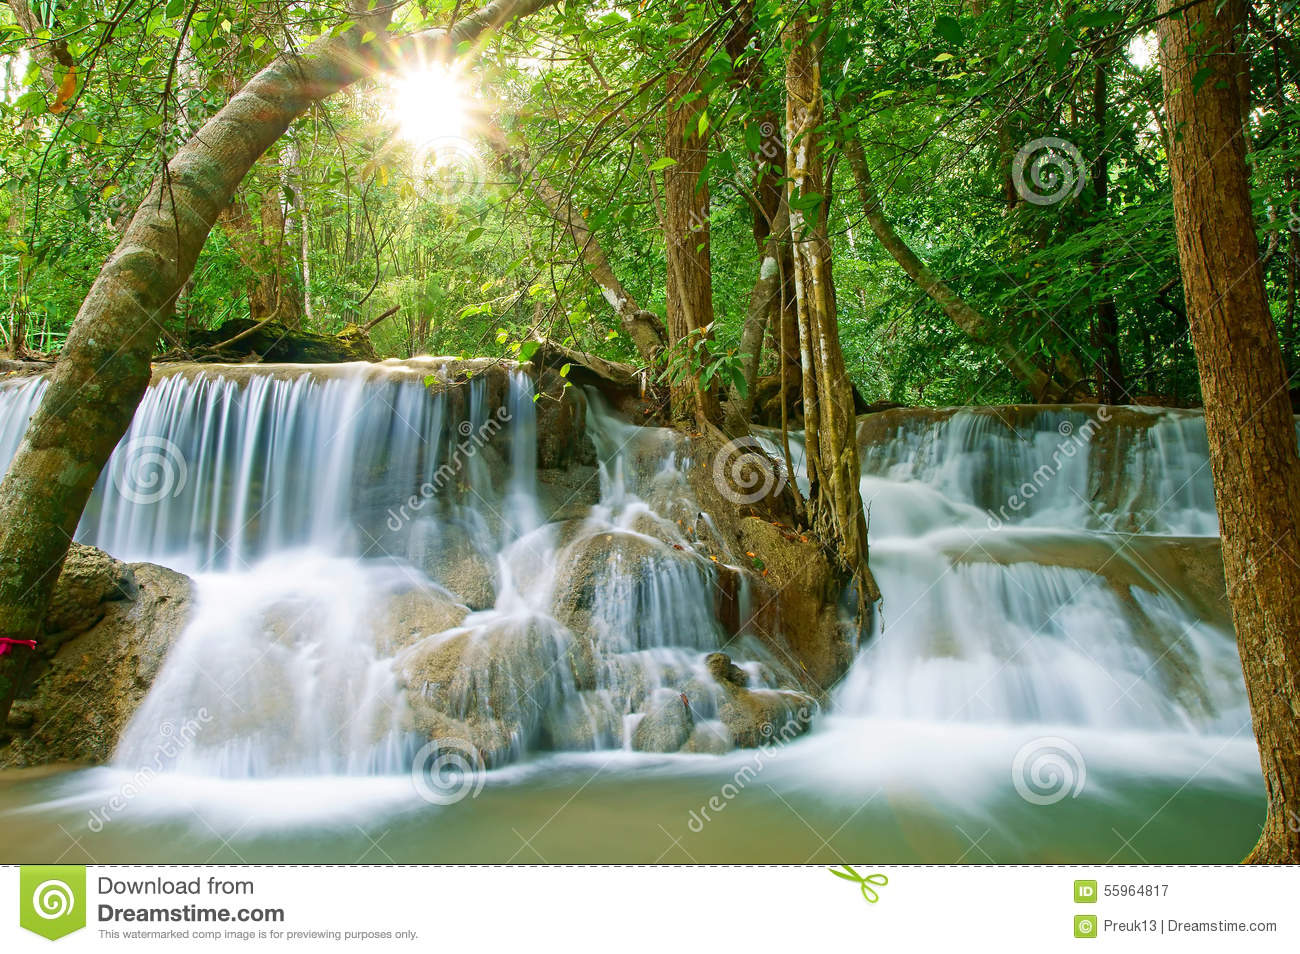 Waterfall14 Stock Photo - Image: 55964817